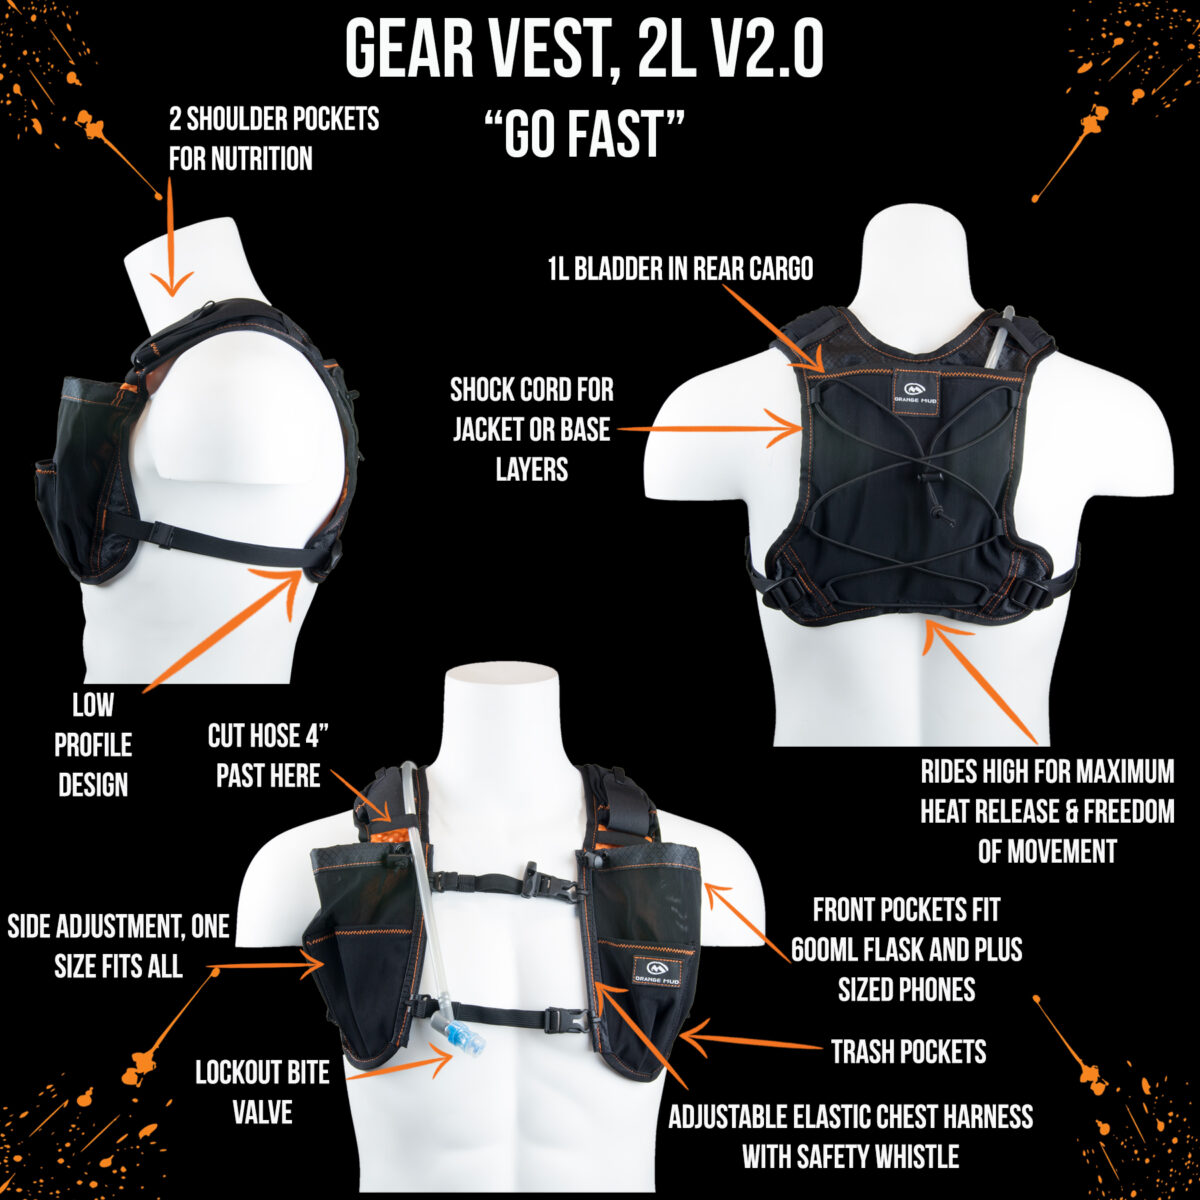 Gear Vest Group with text